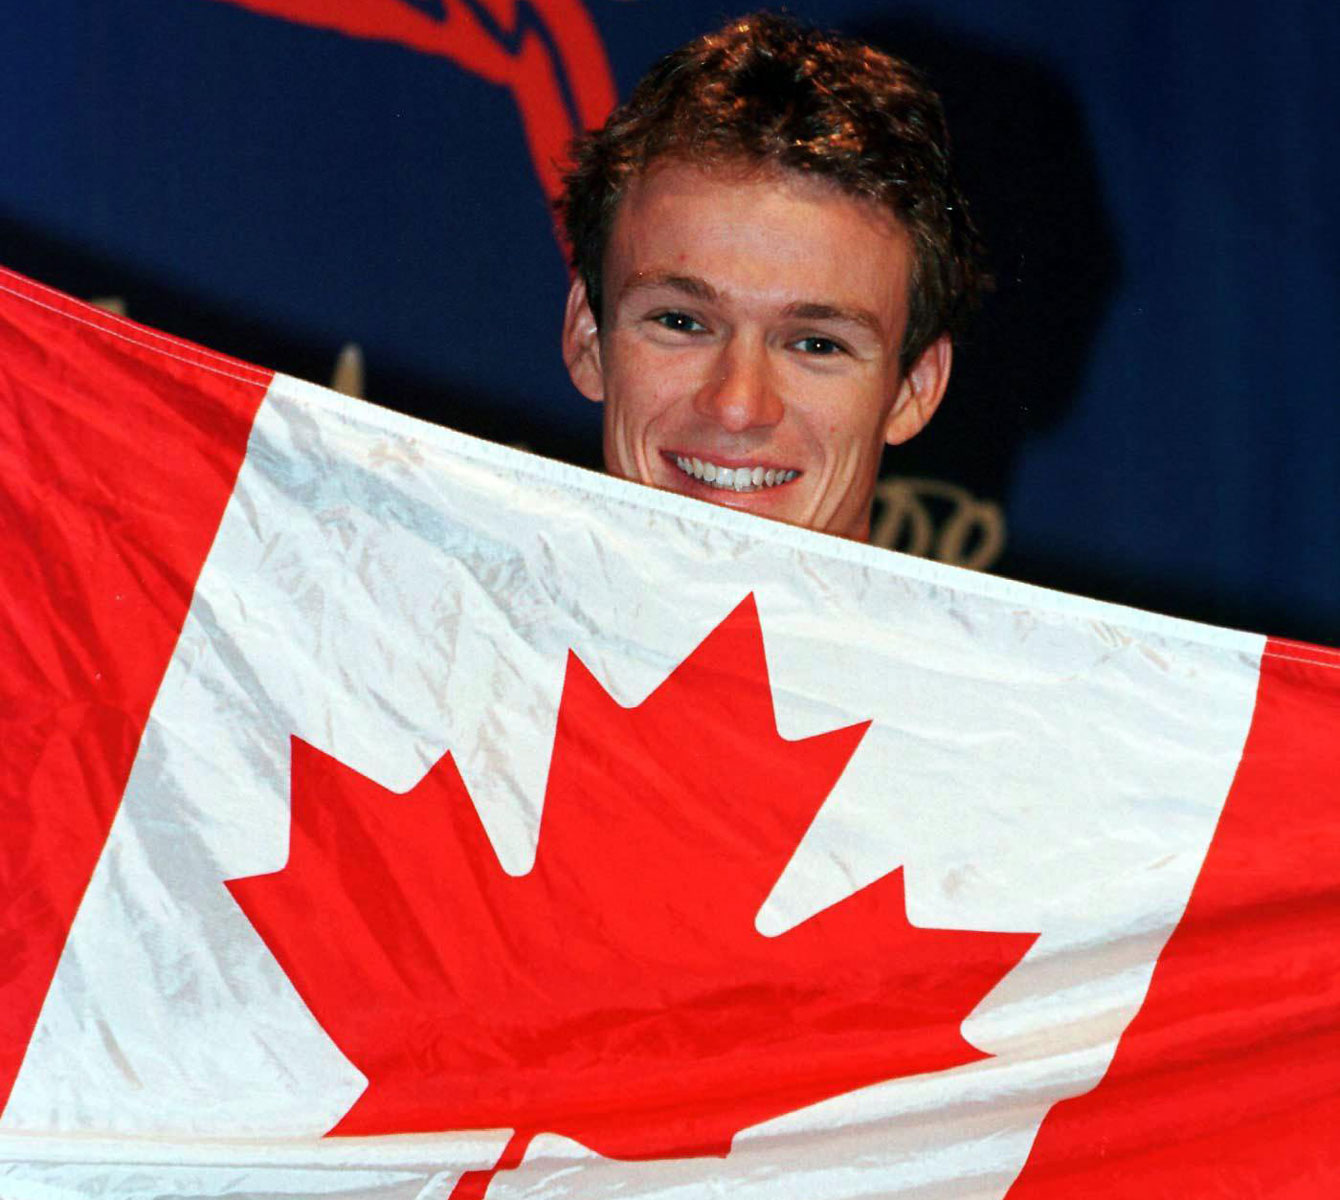 Simon Whitfield with the flag at Sydney 2000.